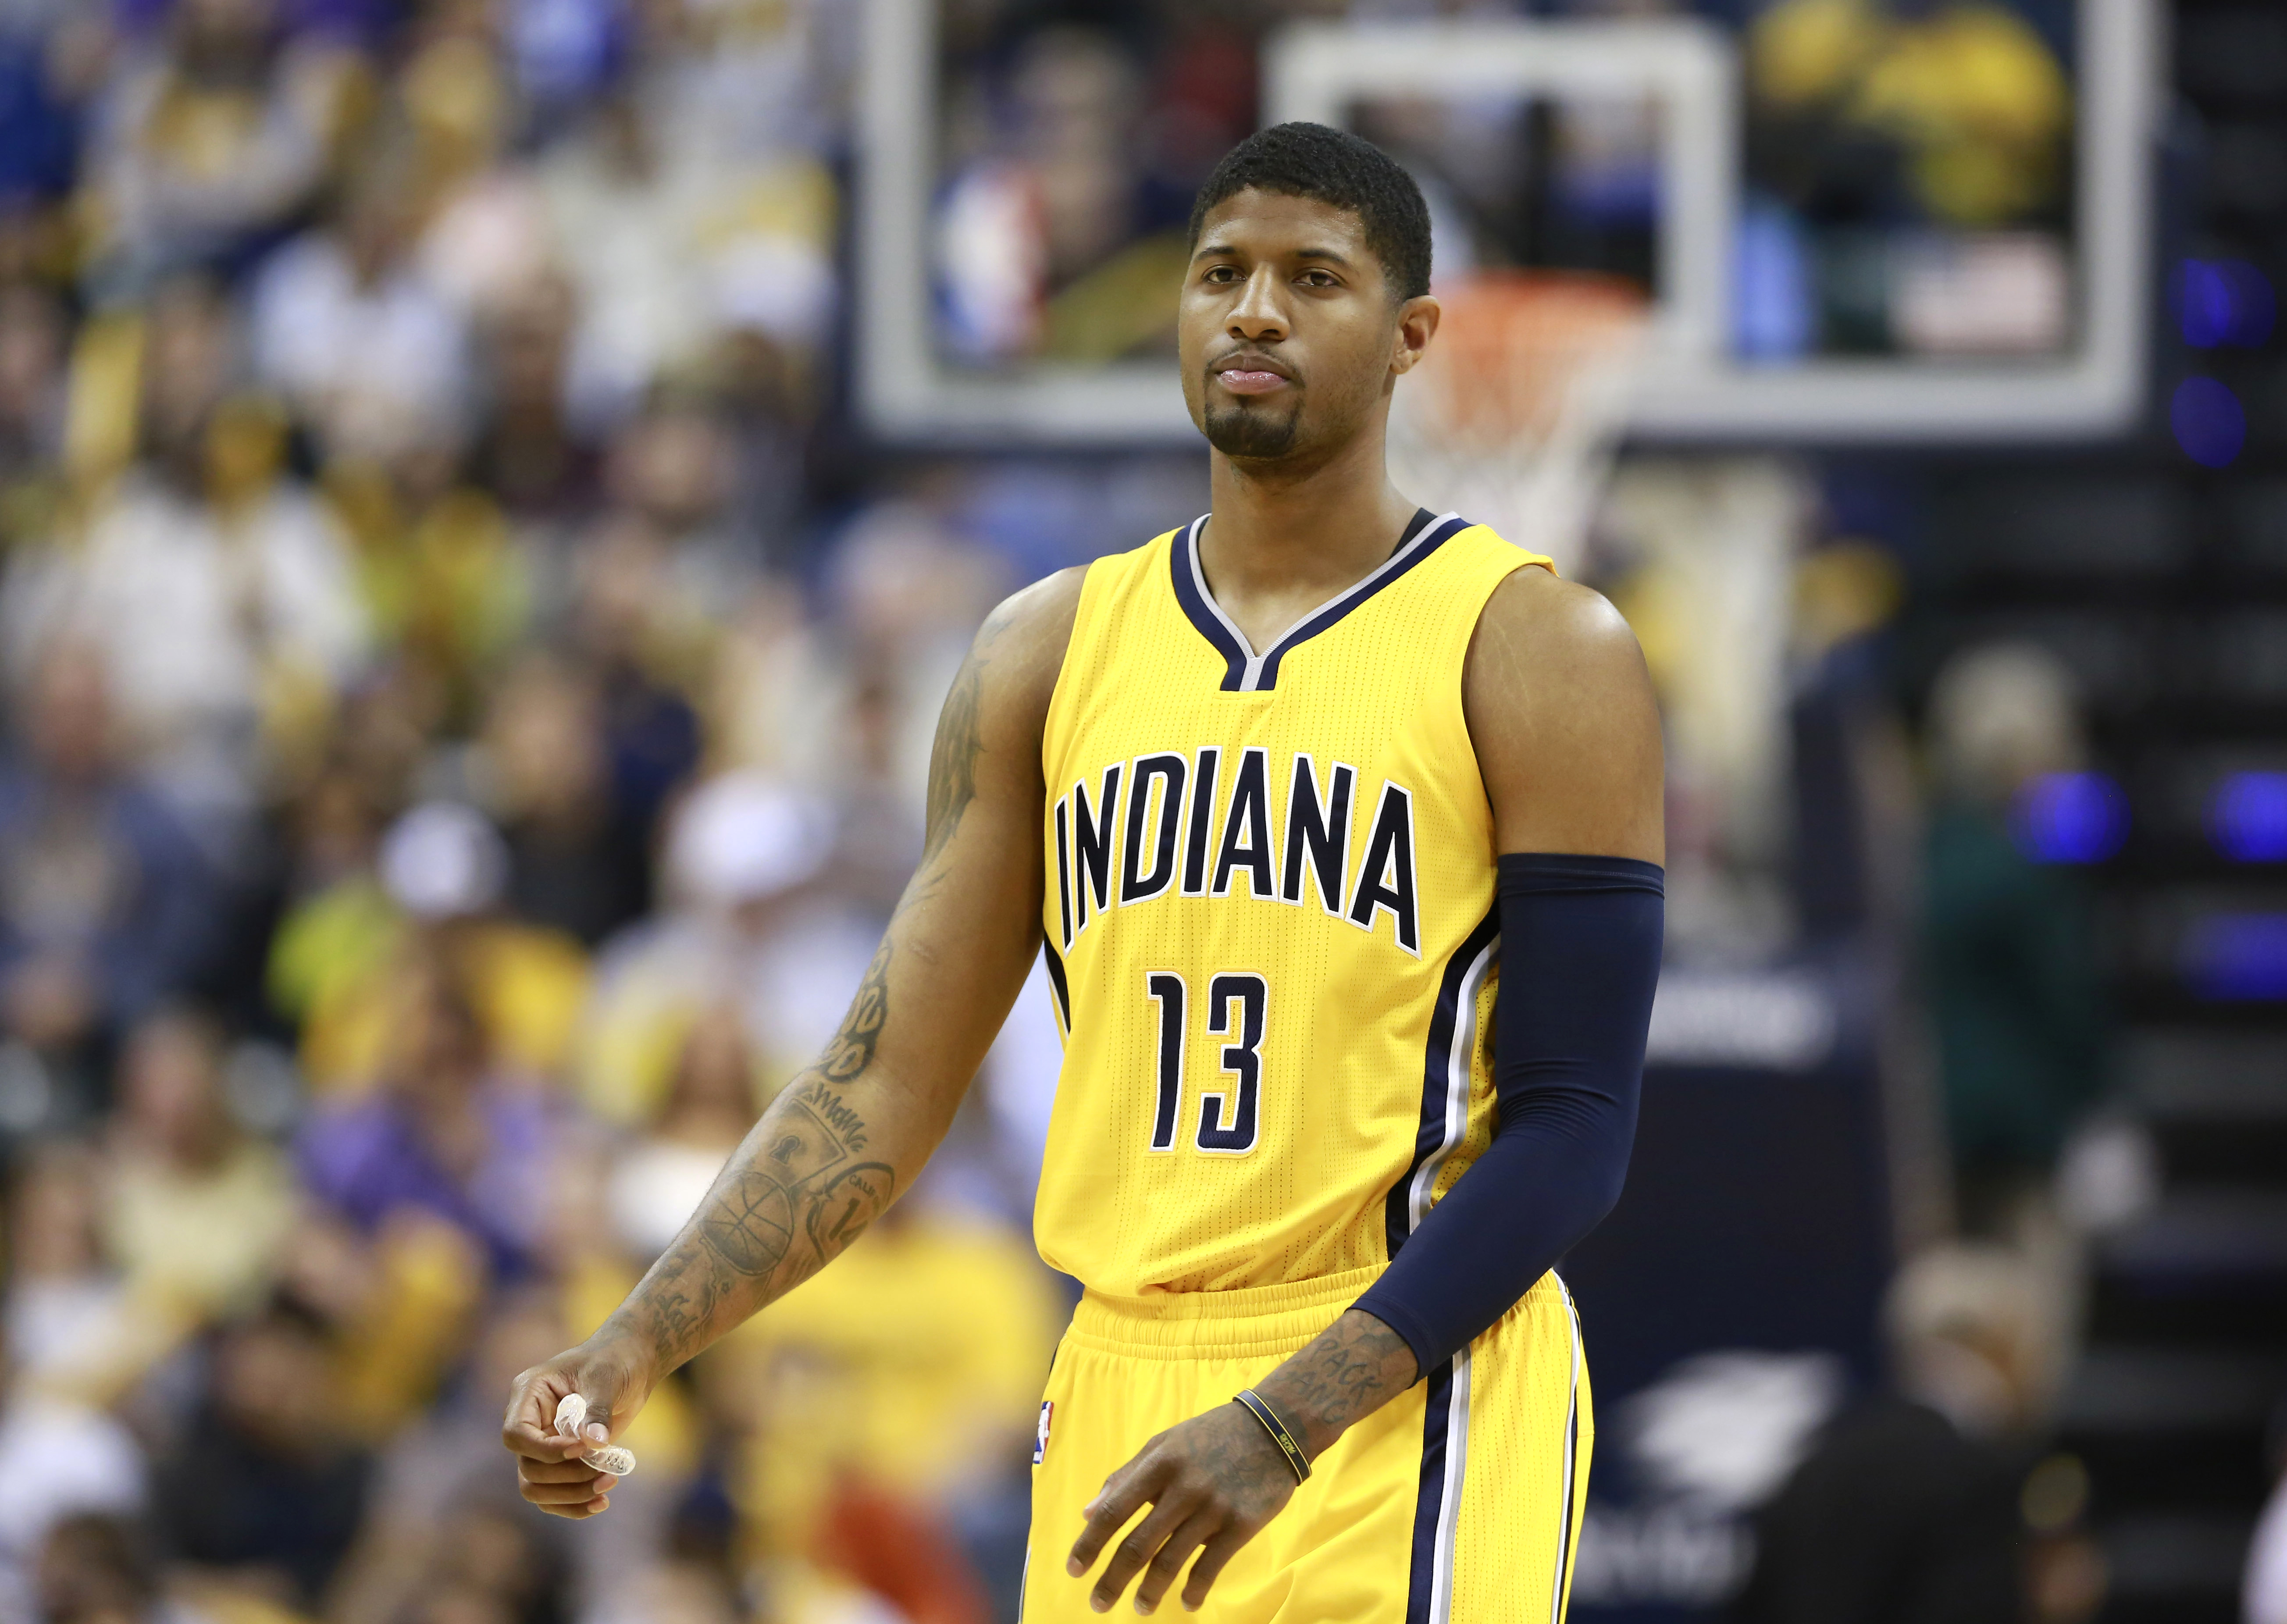 Paul George: Indiana Pacers star has MVP aspirations | SI.com